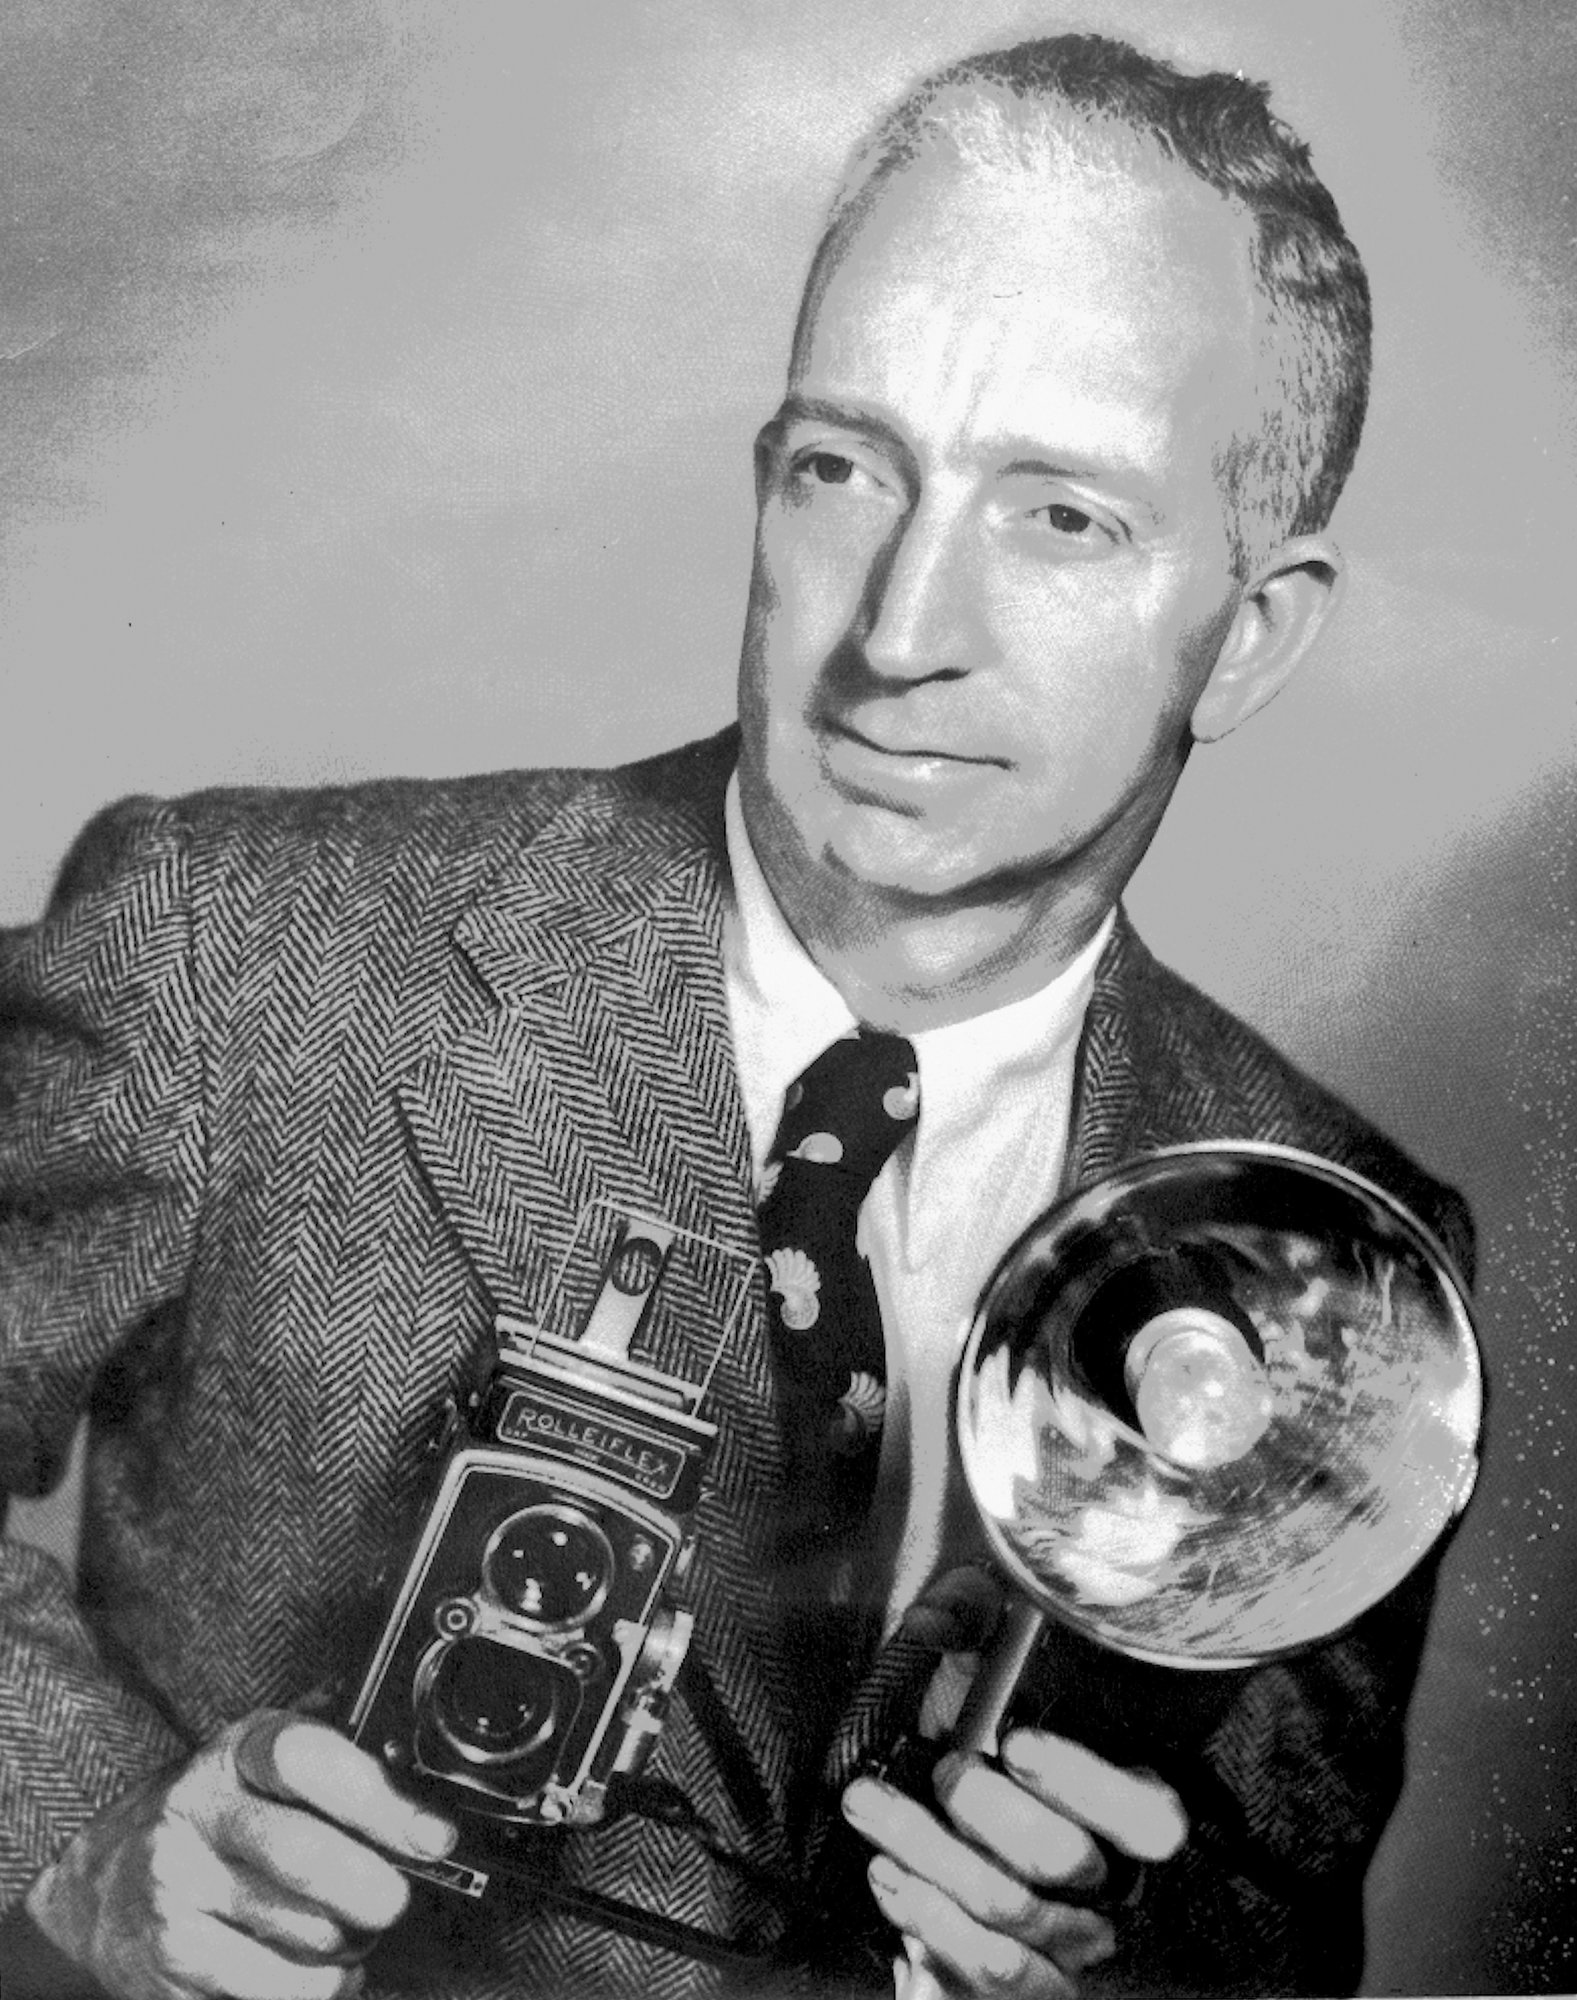 Heyward Crowson joined the Sumter Daily Item in 1942 and took prize-winning photographs for the newspaper during his career.